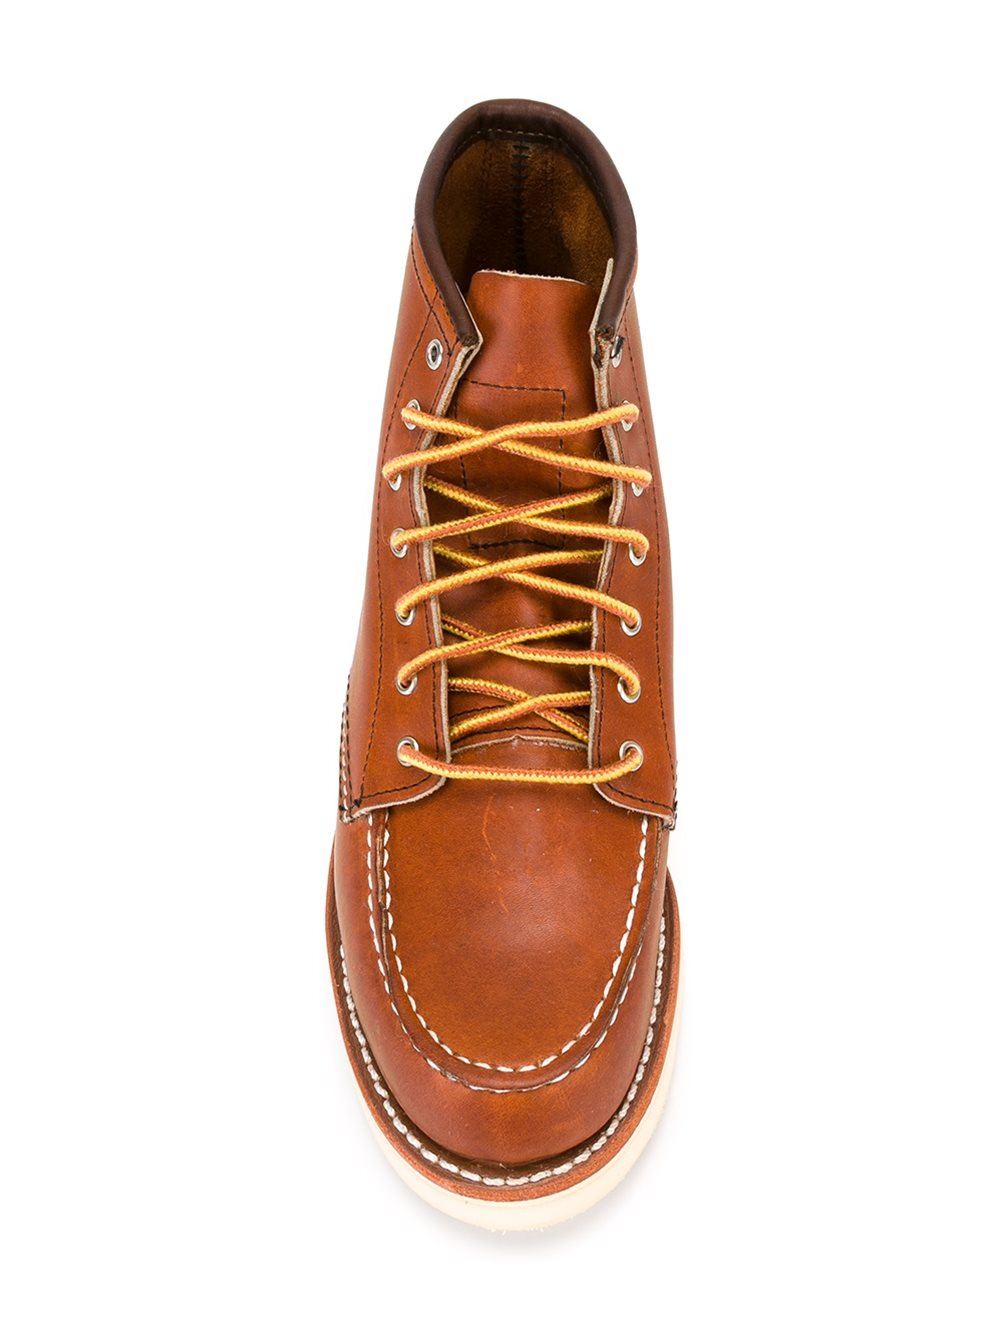 Red Wing Shoes Brighton